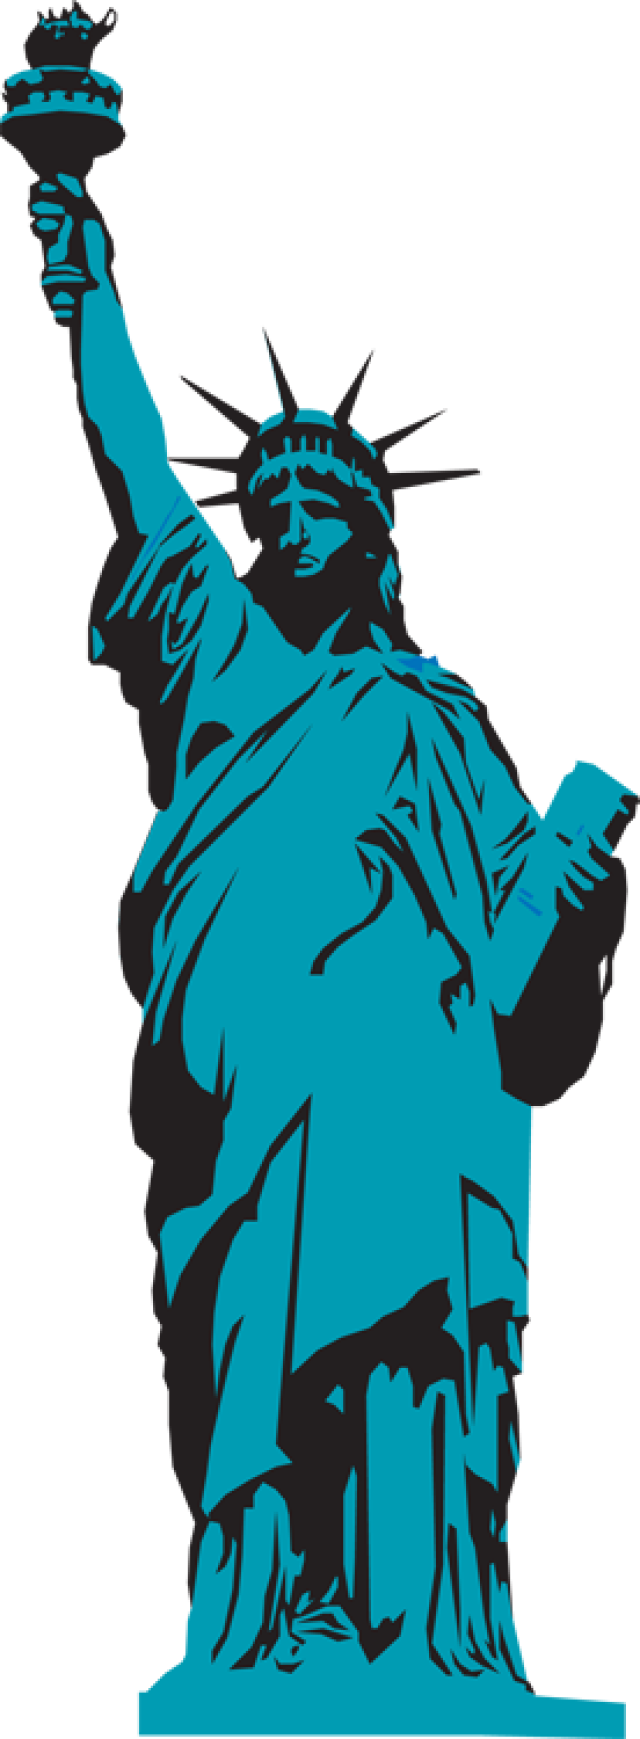 Statue Of Liberty Drawing For Kids | Free download on ...